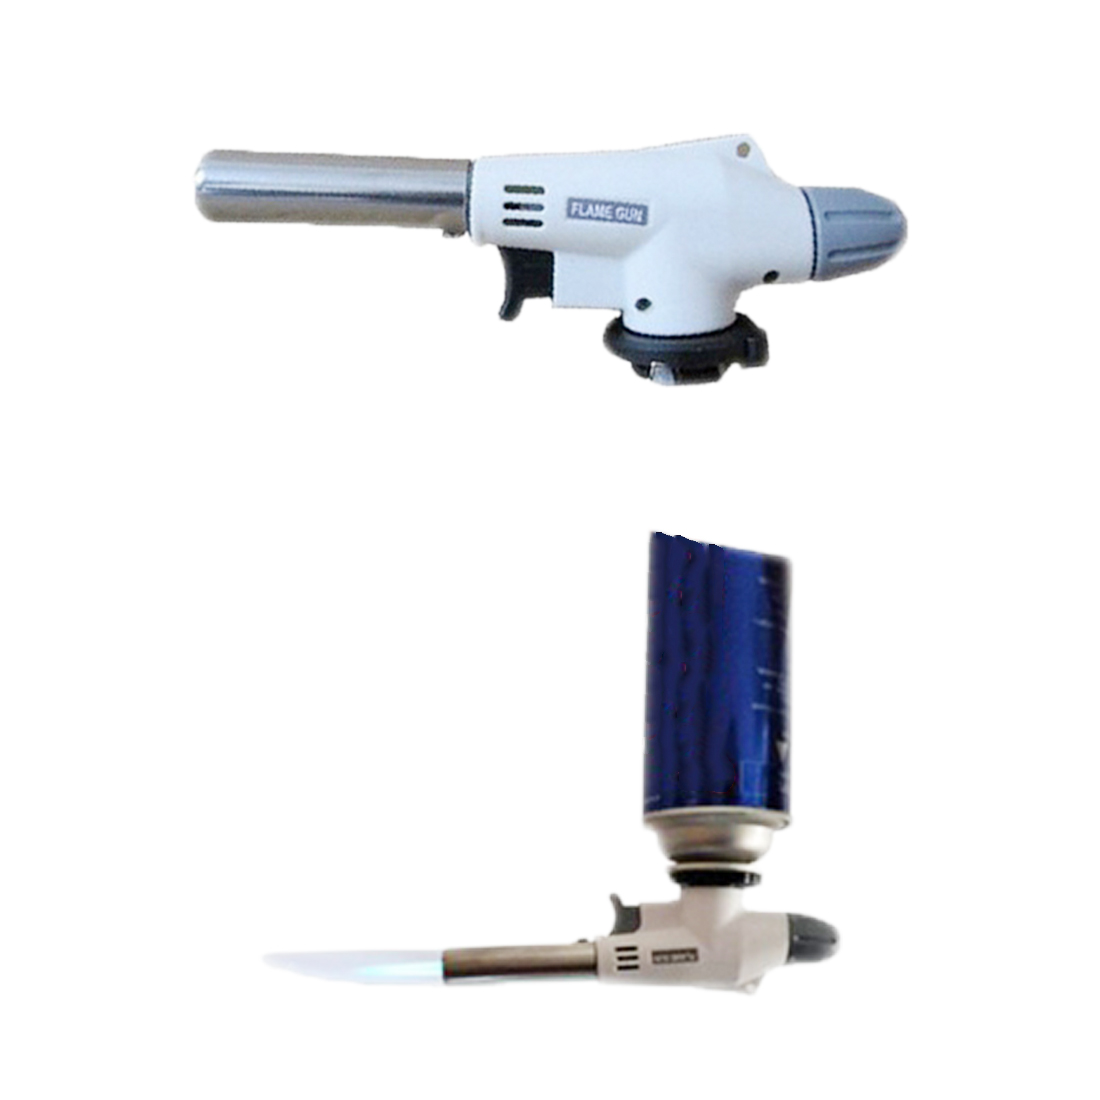 Gas Burner Flame Gas Torch Flame Gun Blowtorch Cooking Soldering Butane AutoIgnition gas-Burner Lighter Heating Welding цены